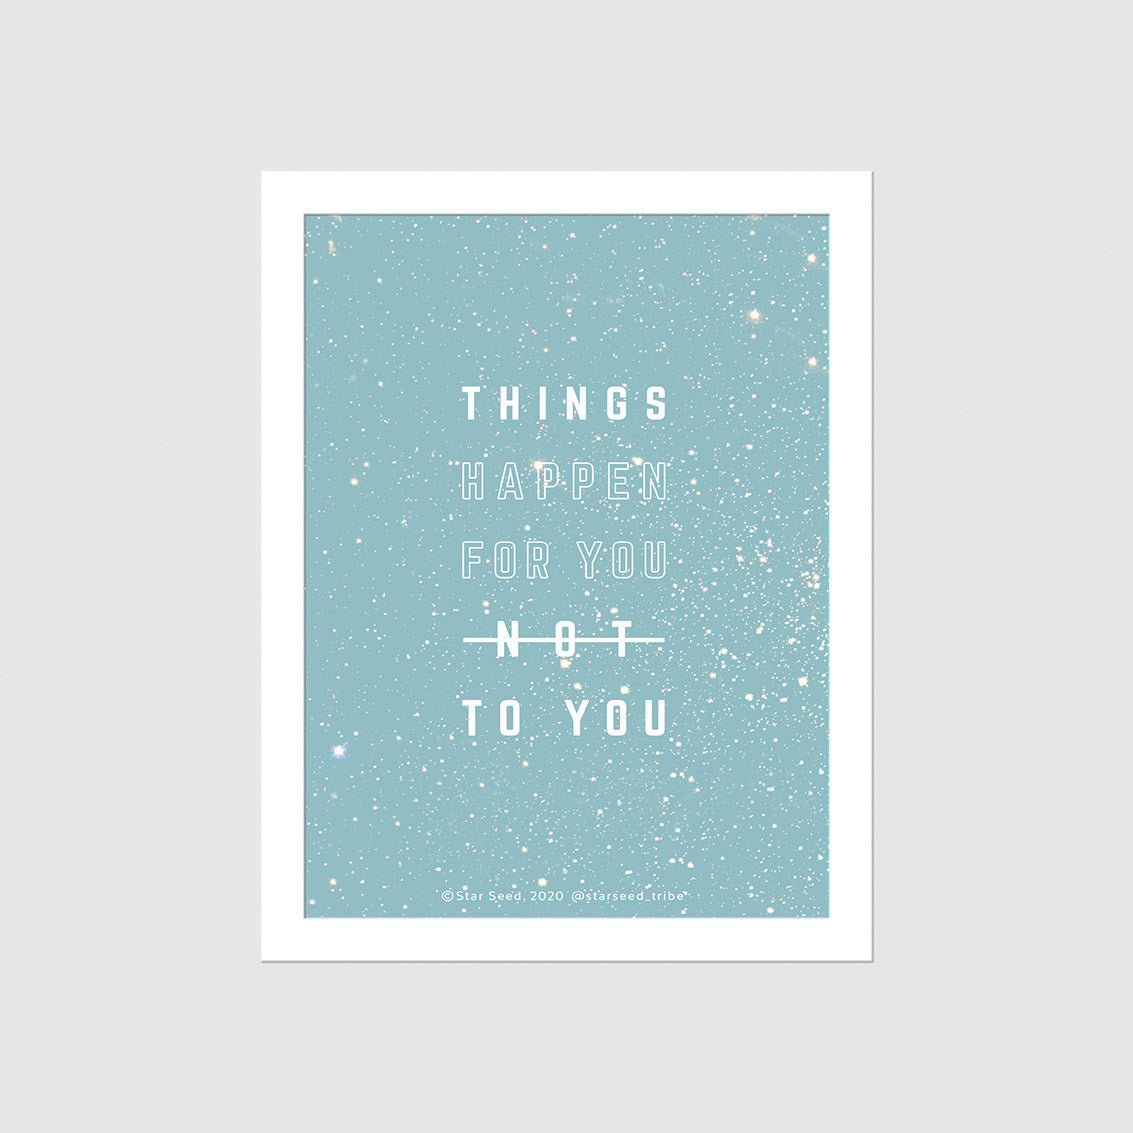 Things Happen for You - Digital Art Print